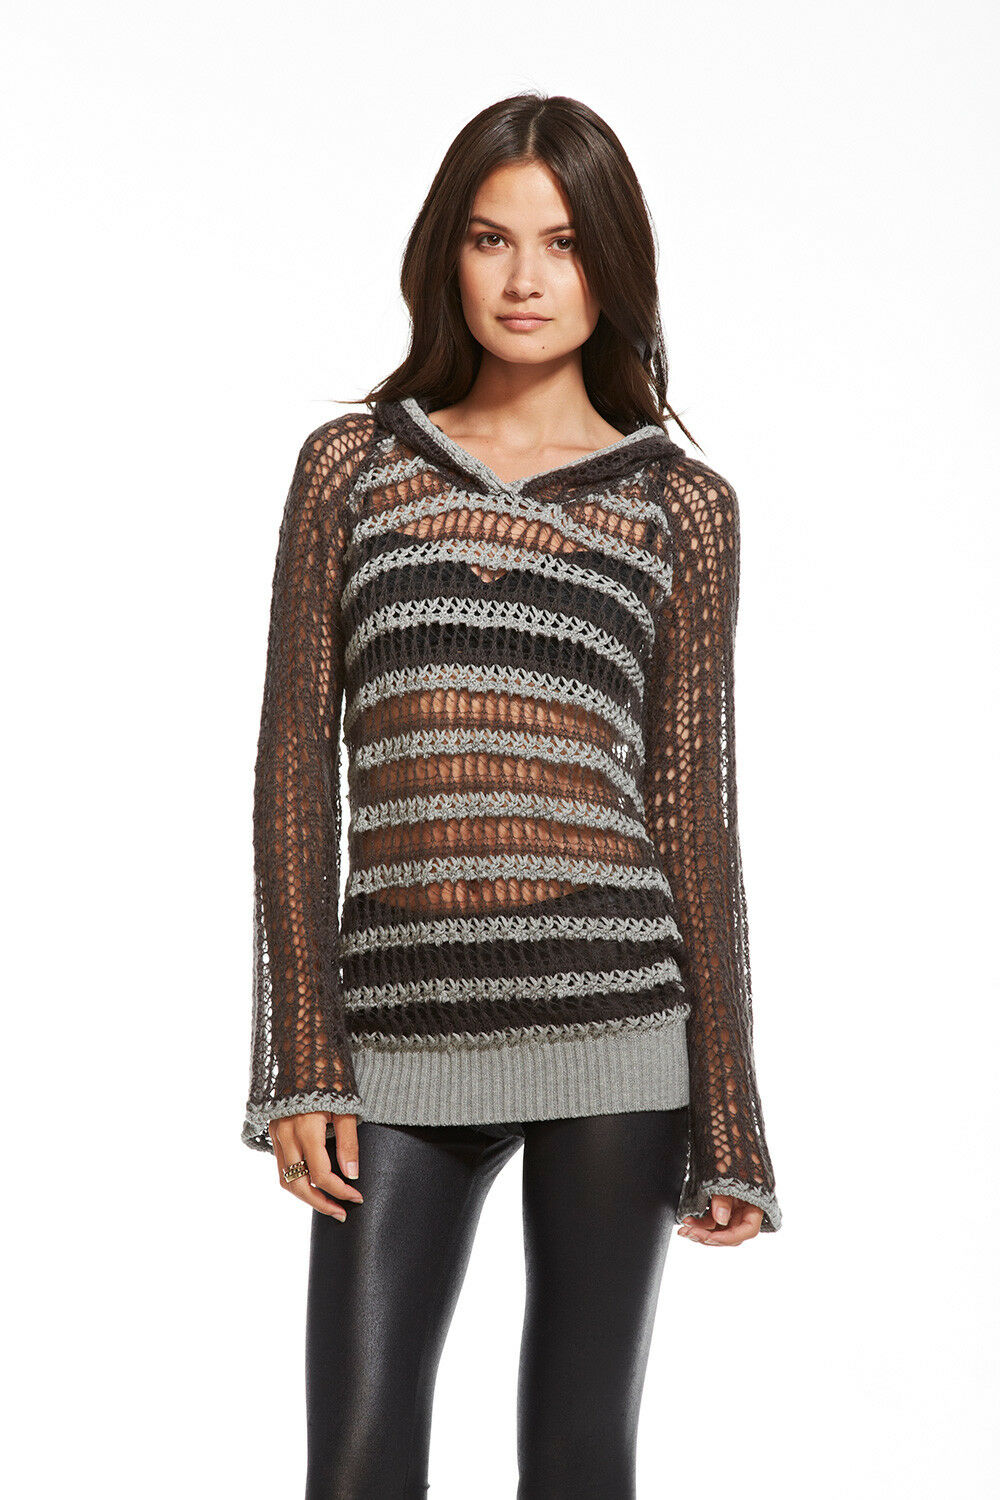 CHASER Sweater S Striped Sheer Open Knit Slouchy Bell Sleeve Hoodie Tunic NWT